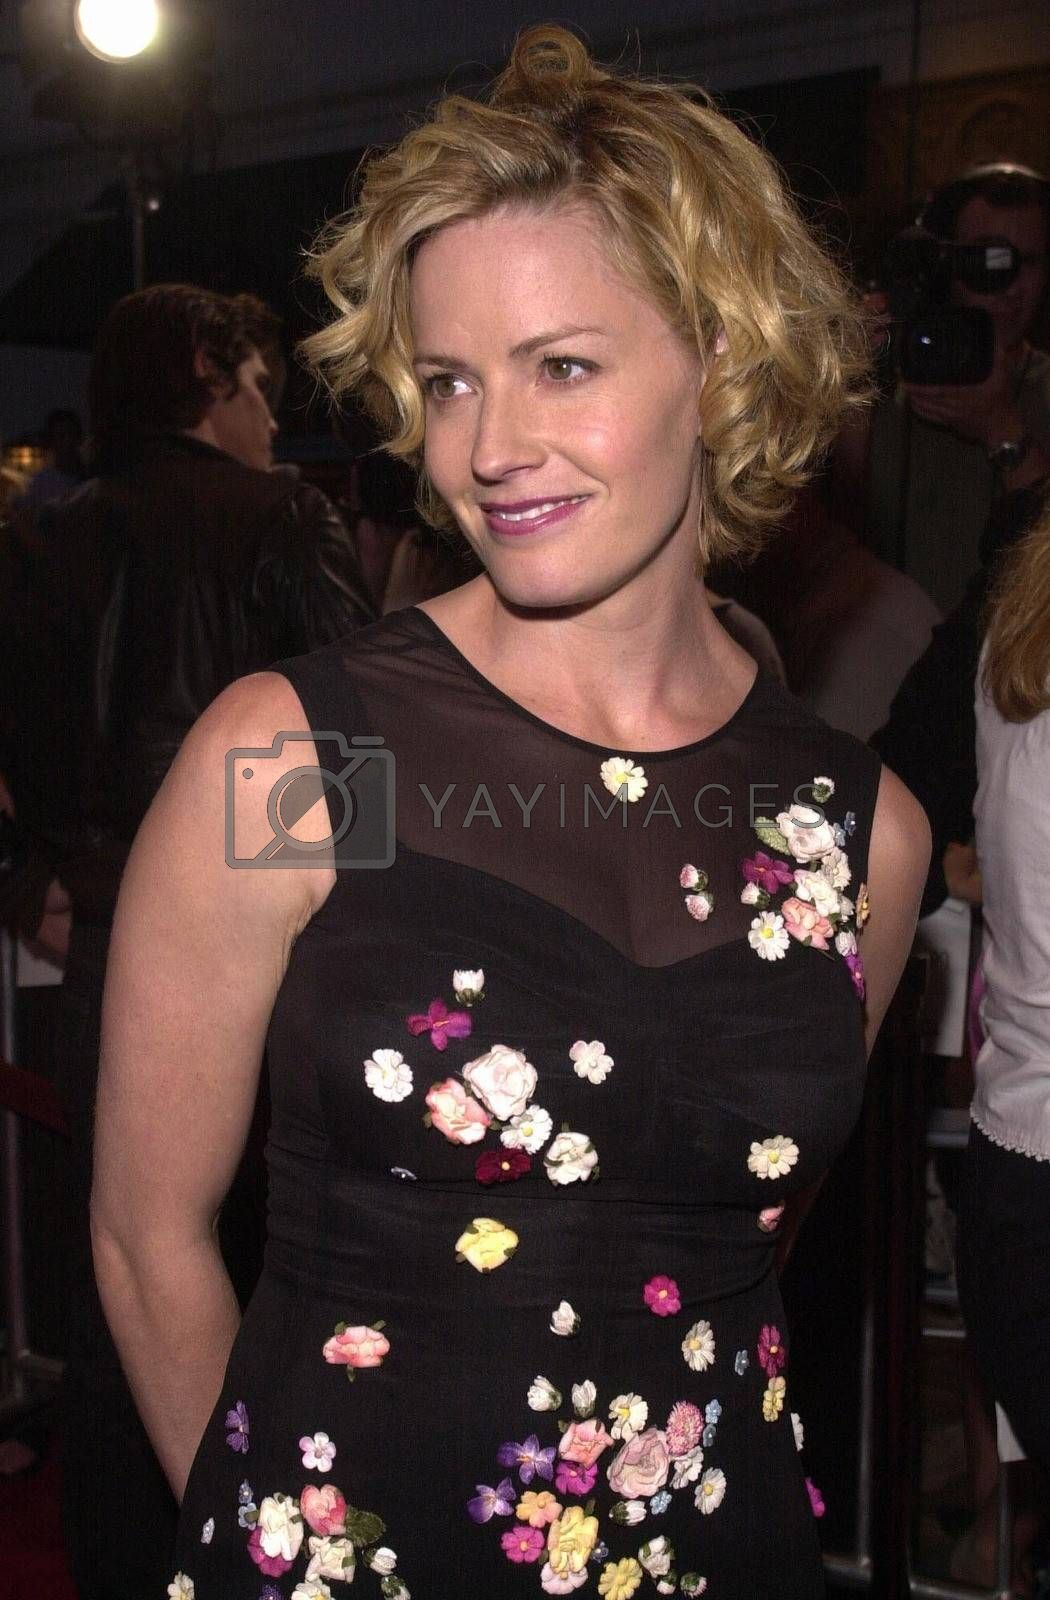 Elisabeth Shue at the premiere of Hollow Man in Westwood. 08-02-00